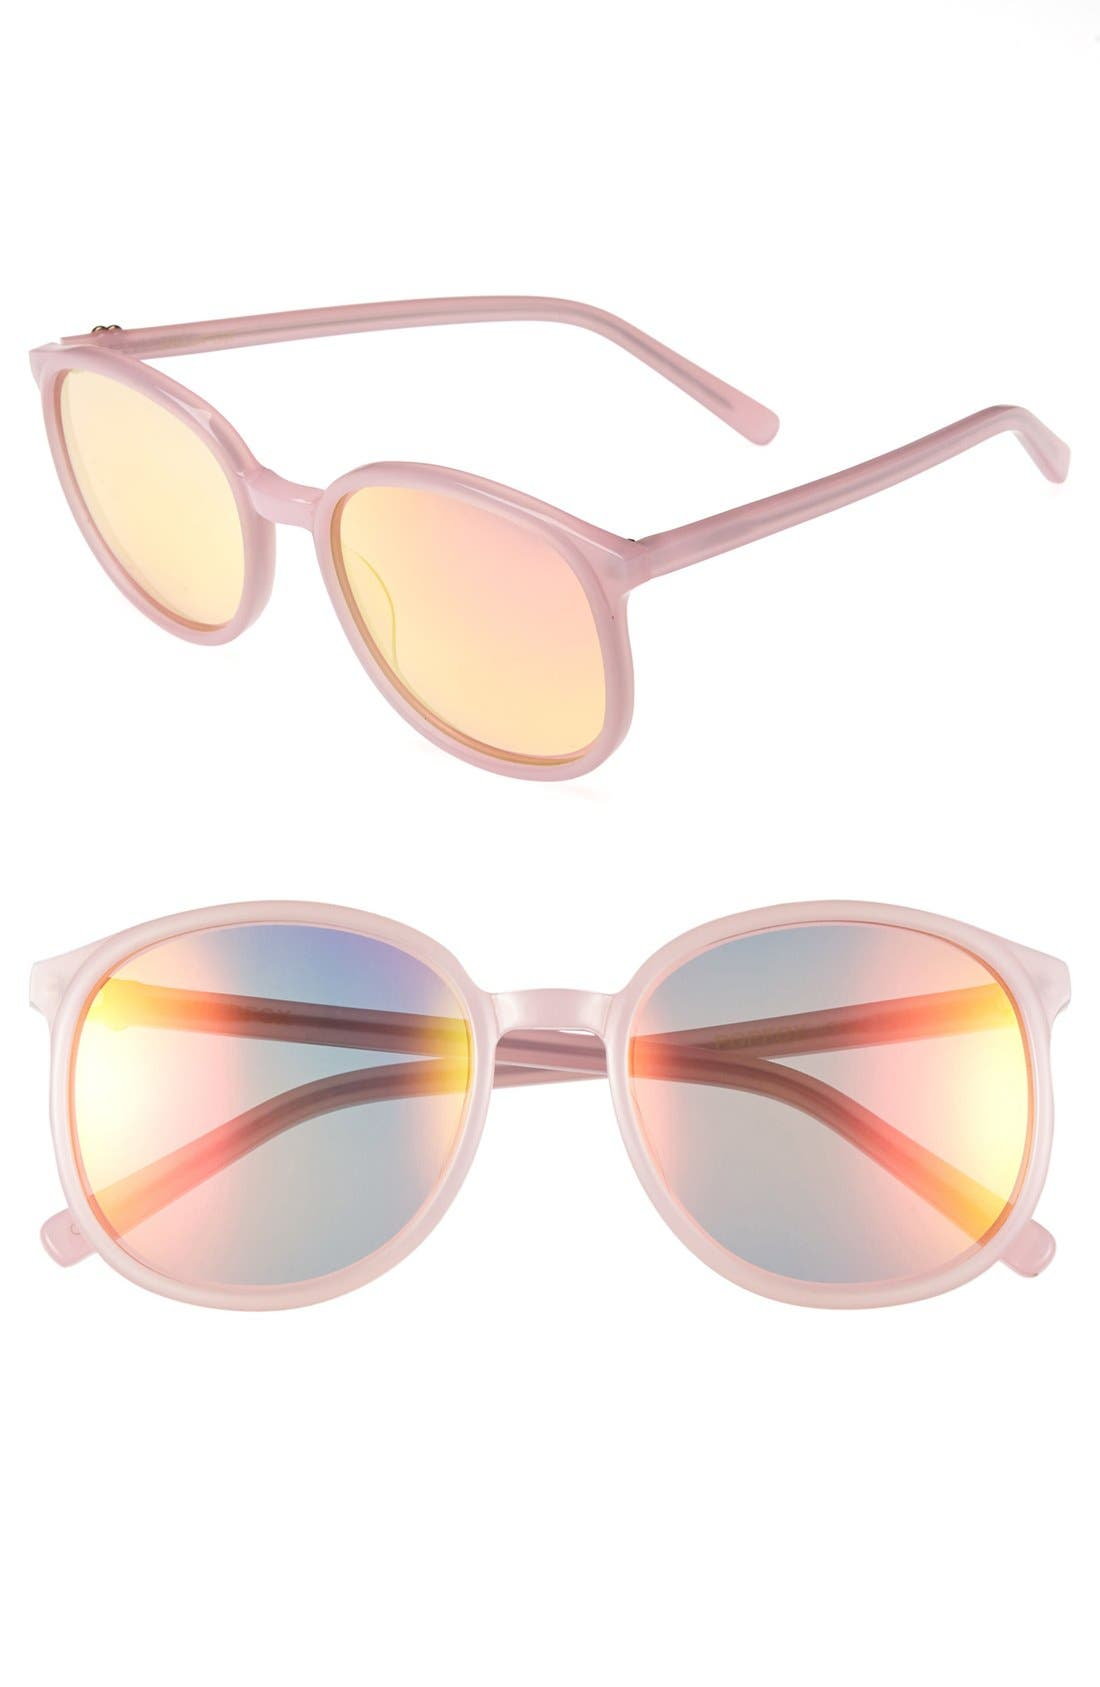 Alternate Image 1 Selected - Wildfox 'Popfox Deluxe' Sunglasses